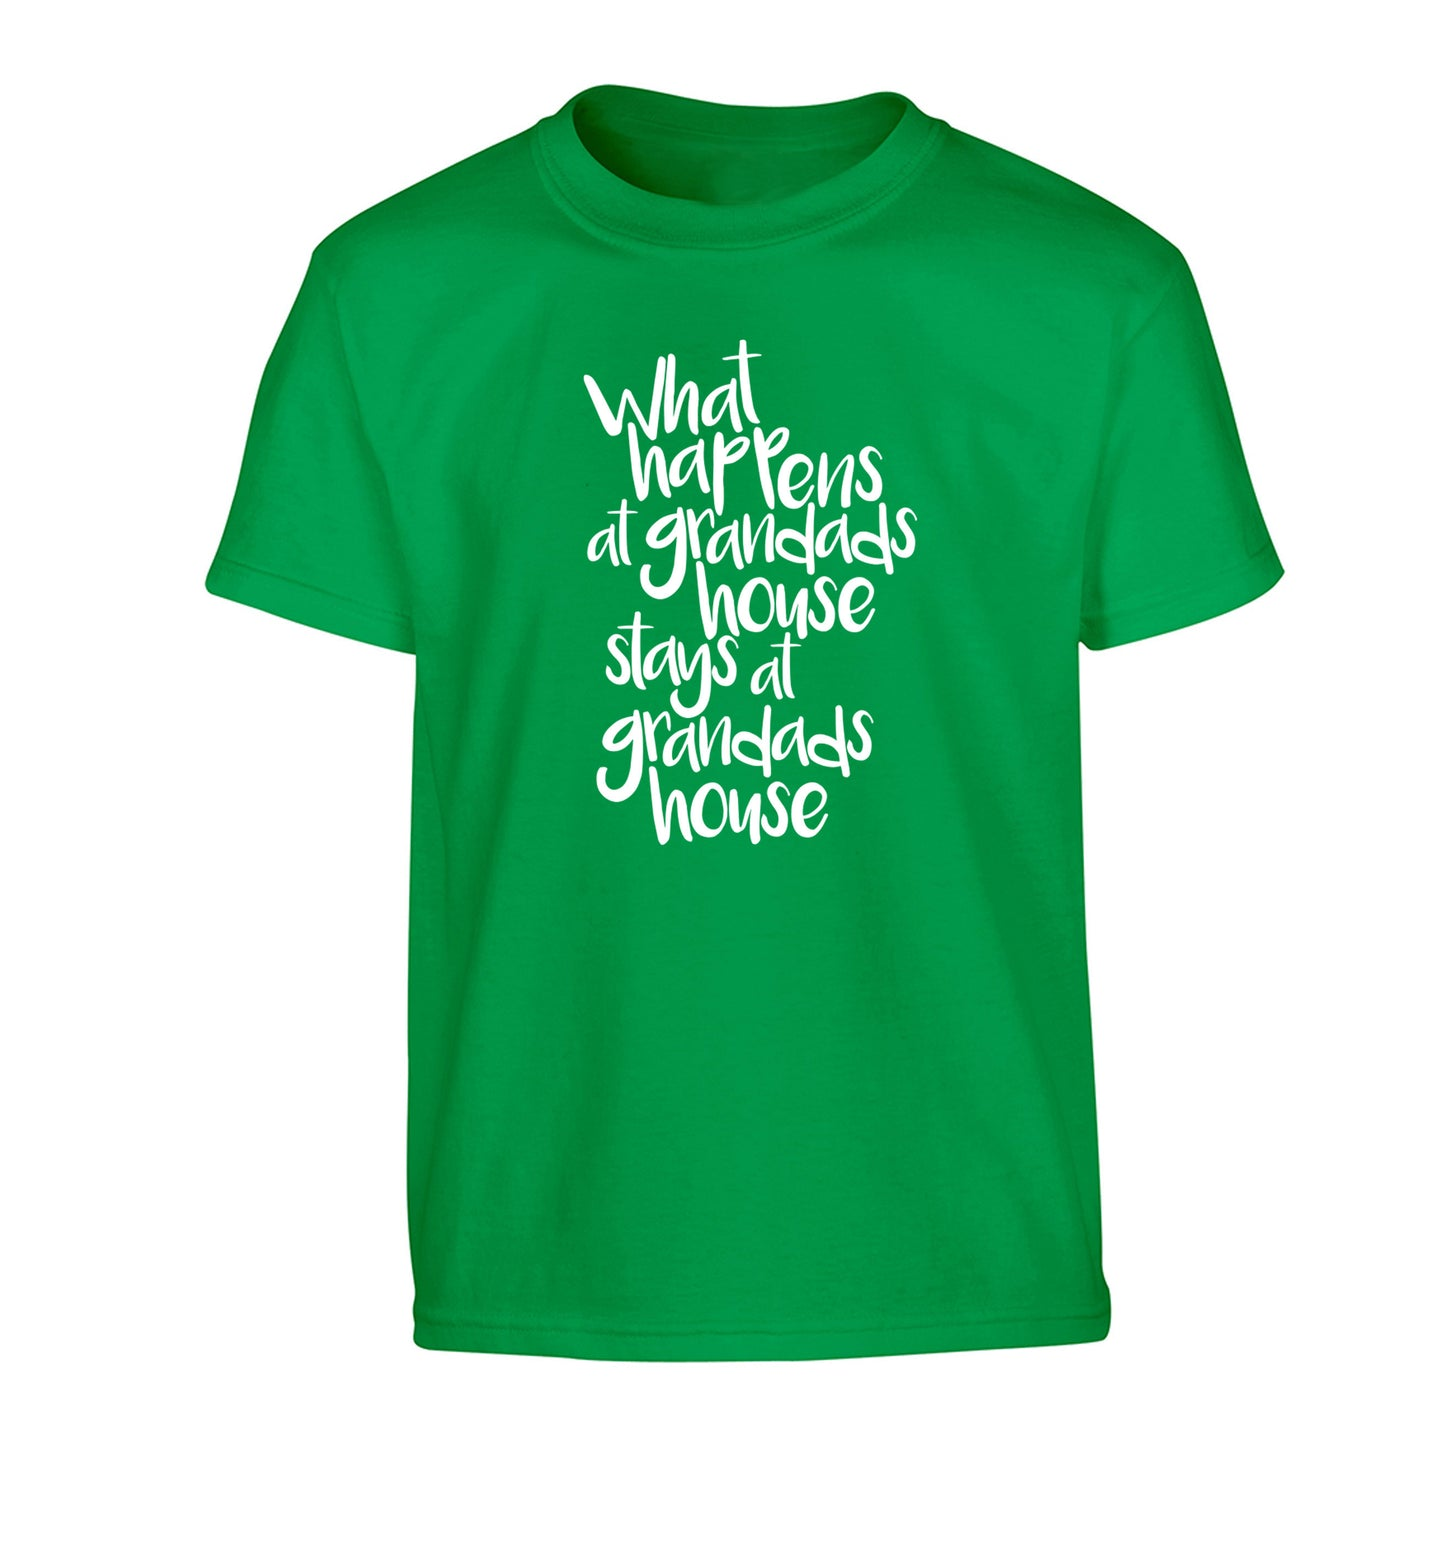 What happens at grandads house stays at grandads house Children's green Tshirt 12-14 Years